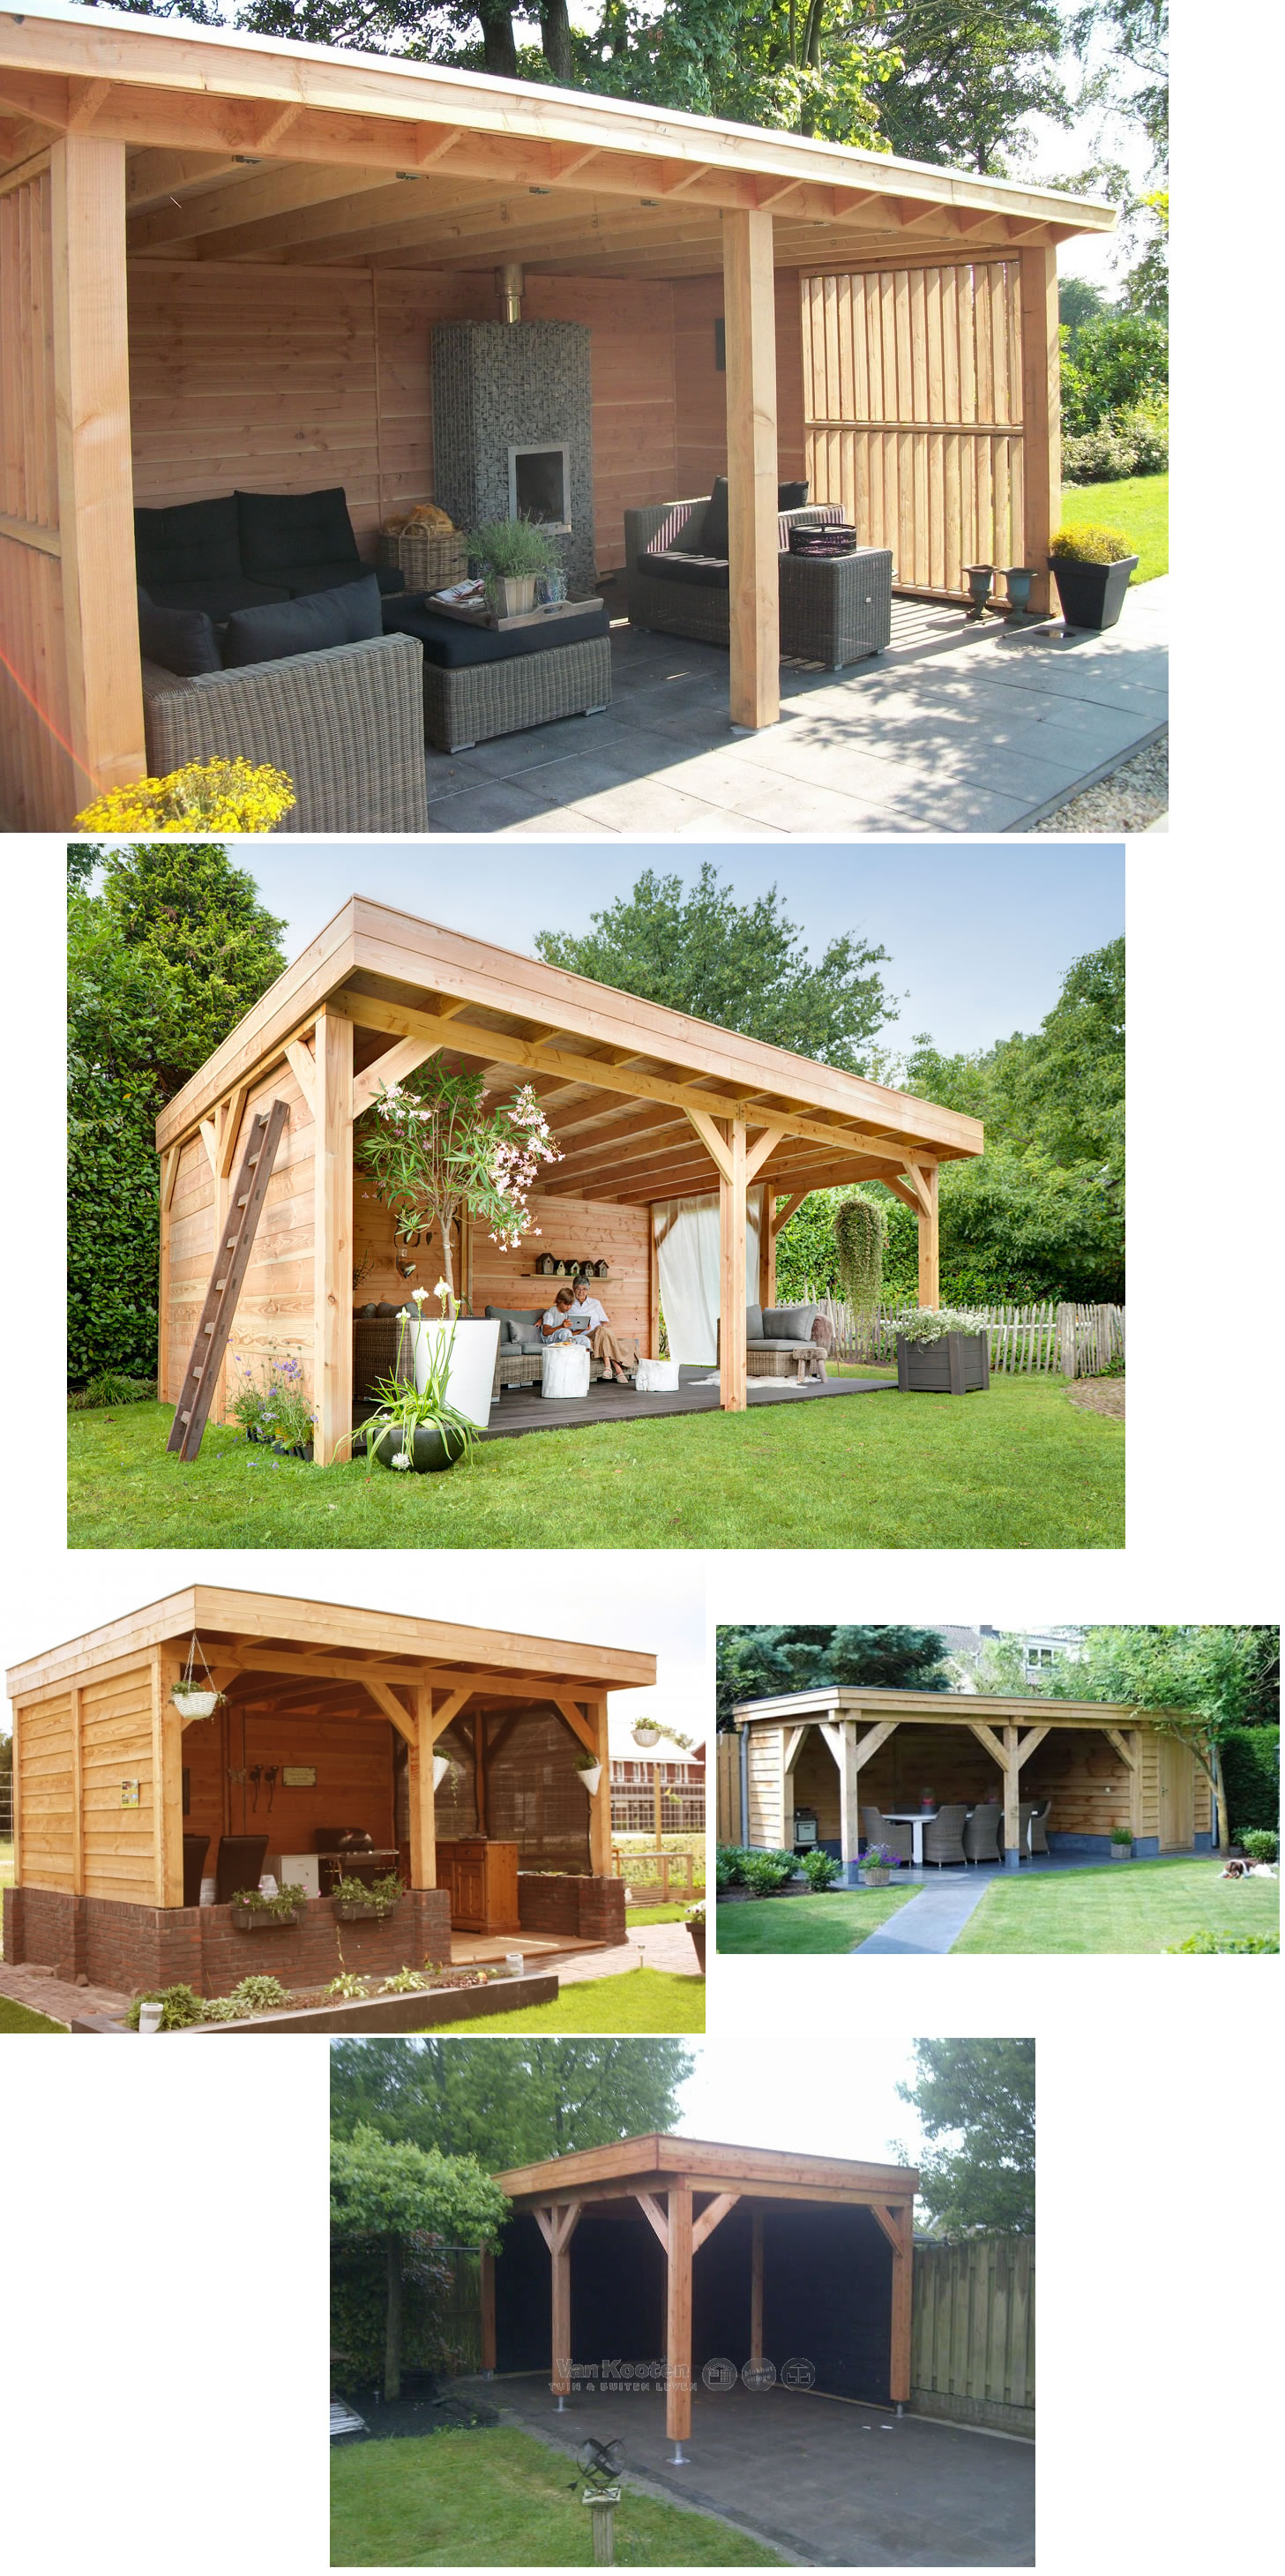 Examples of pent style larch frame and clad garden buildings